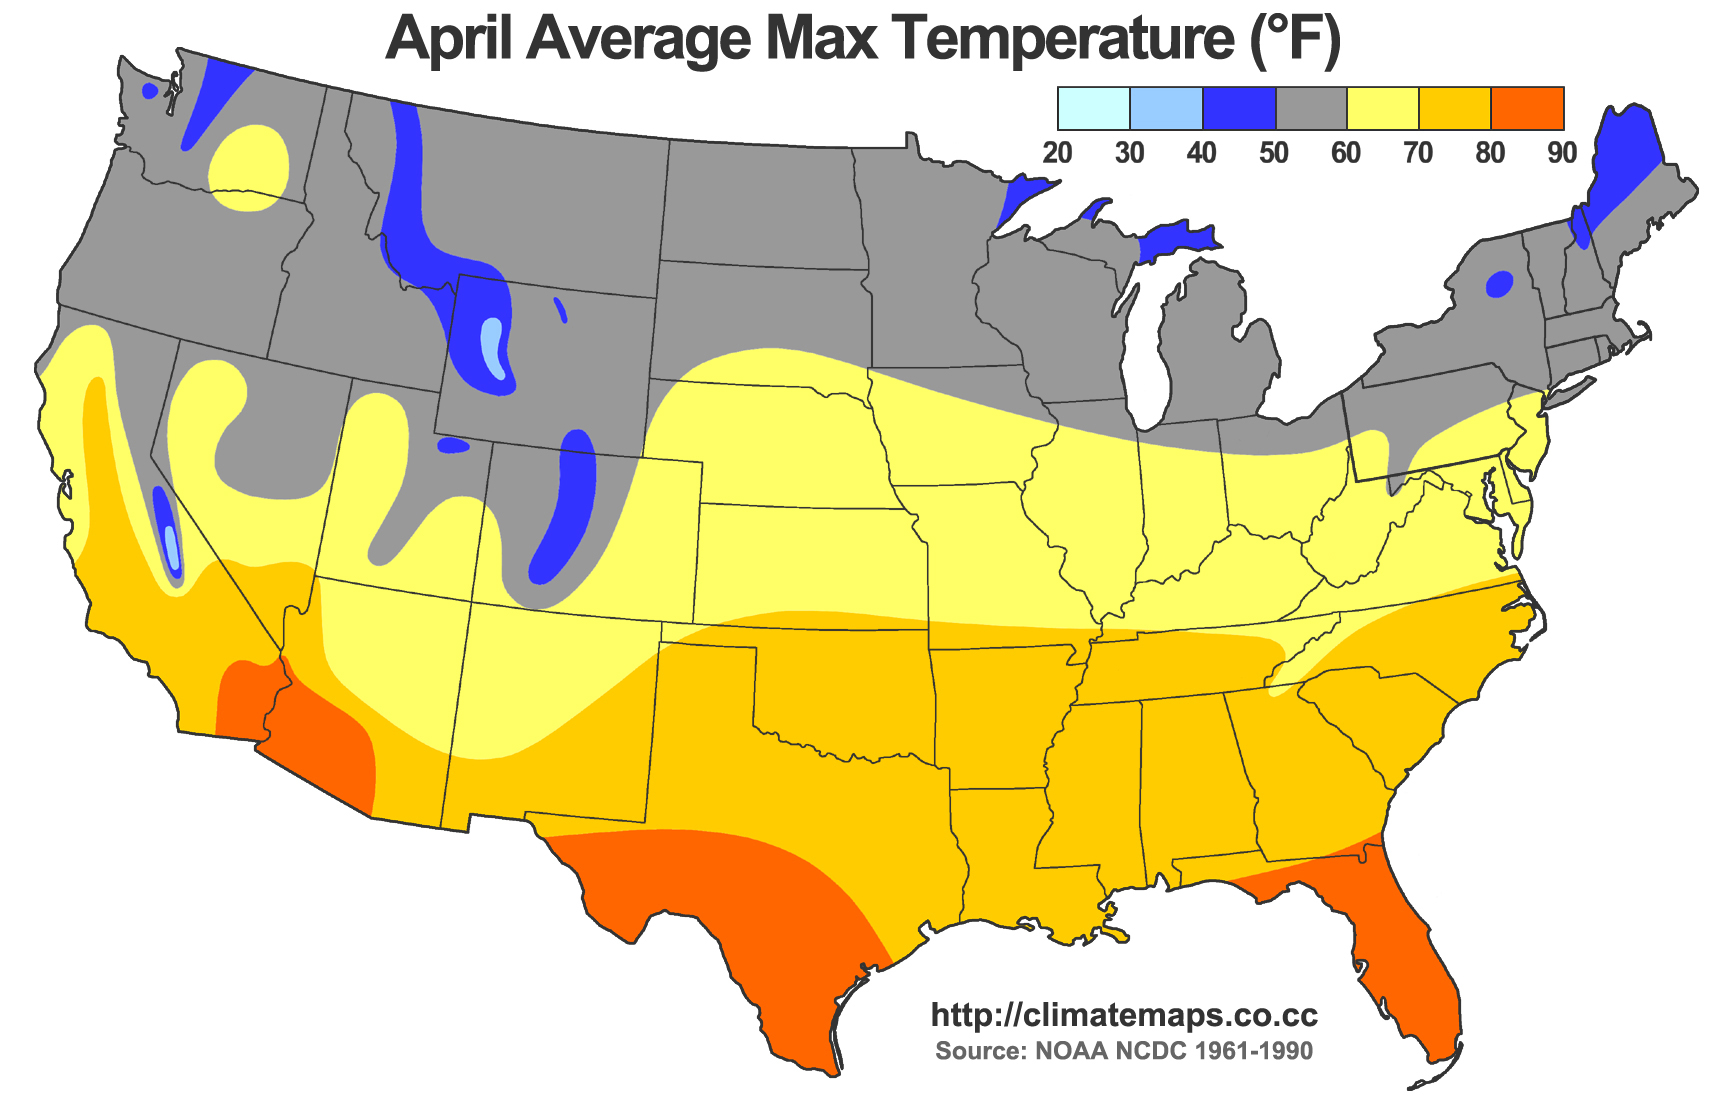 Average high temperatures in April (source: NOAA NCDC 1961-1990).